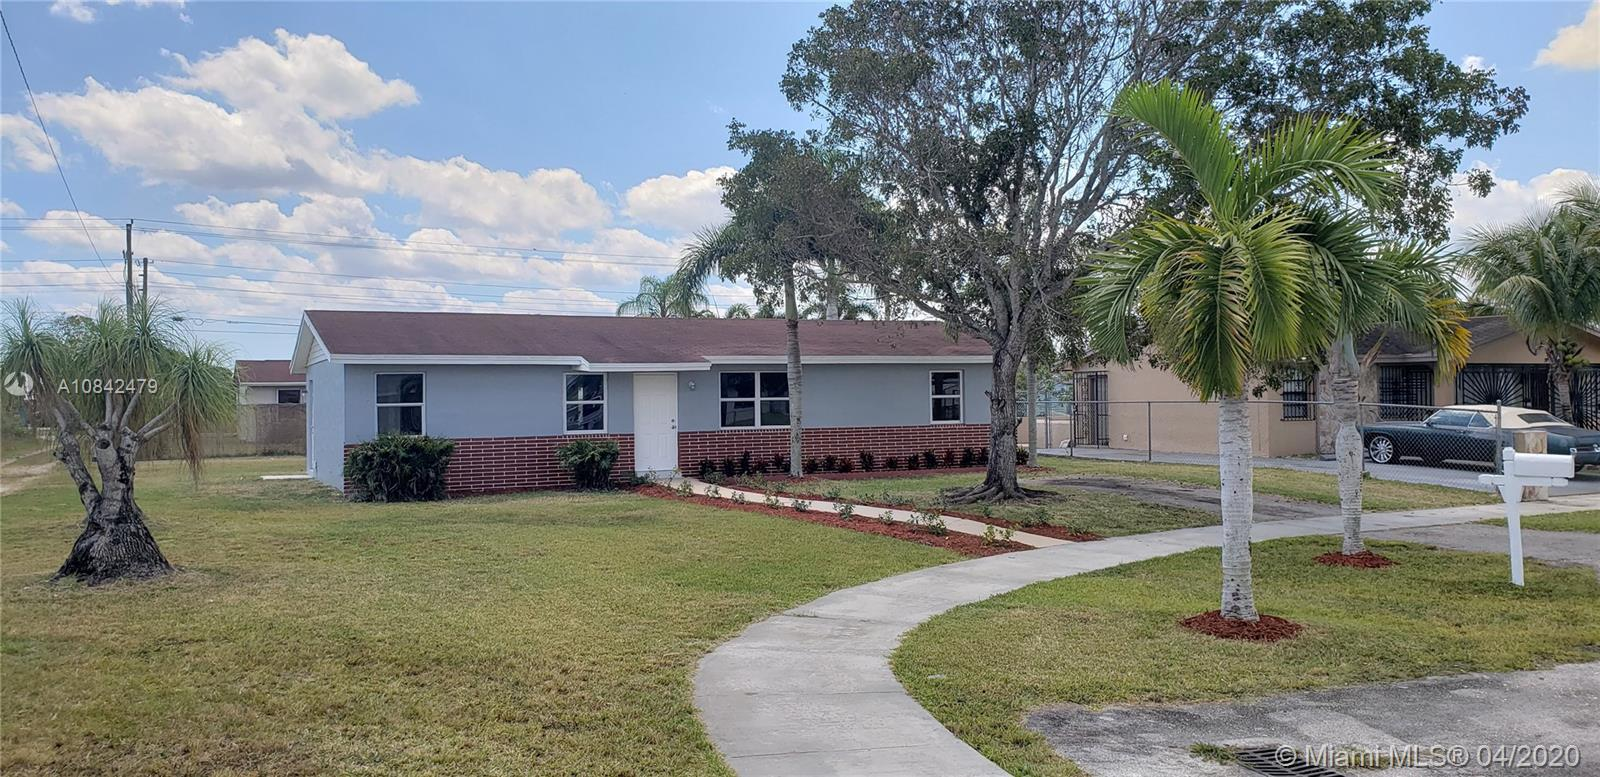 1604 SW 7th St Property Photo - Homestead, FL real estate listing